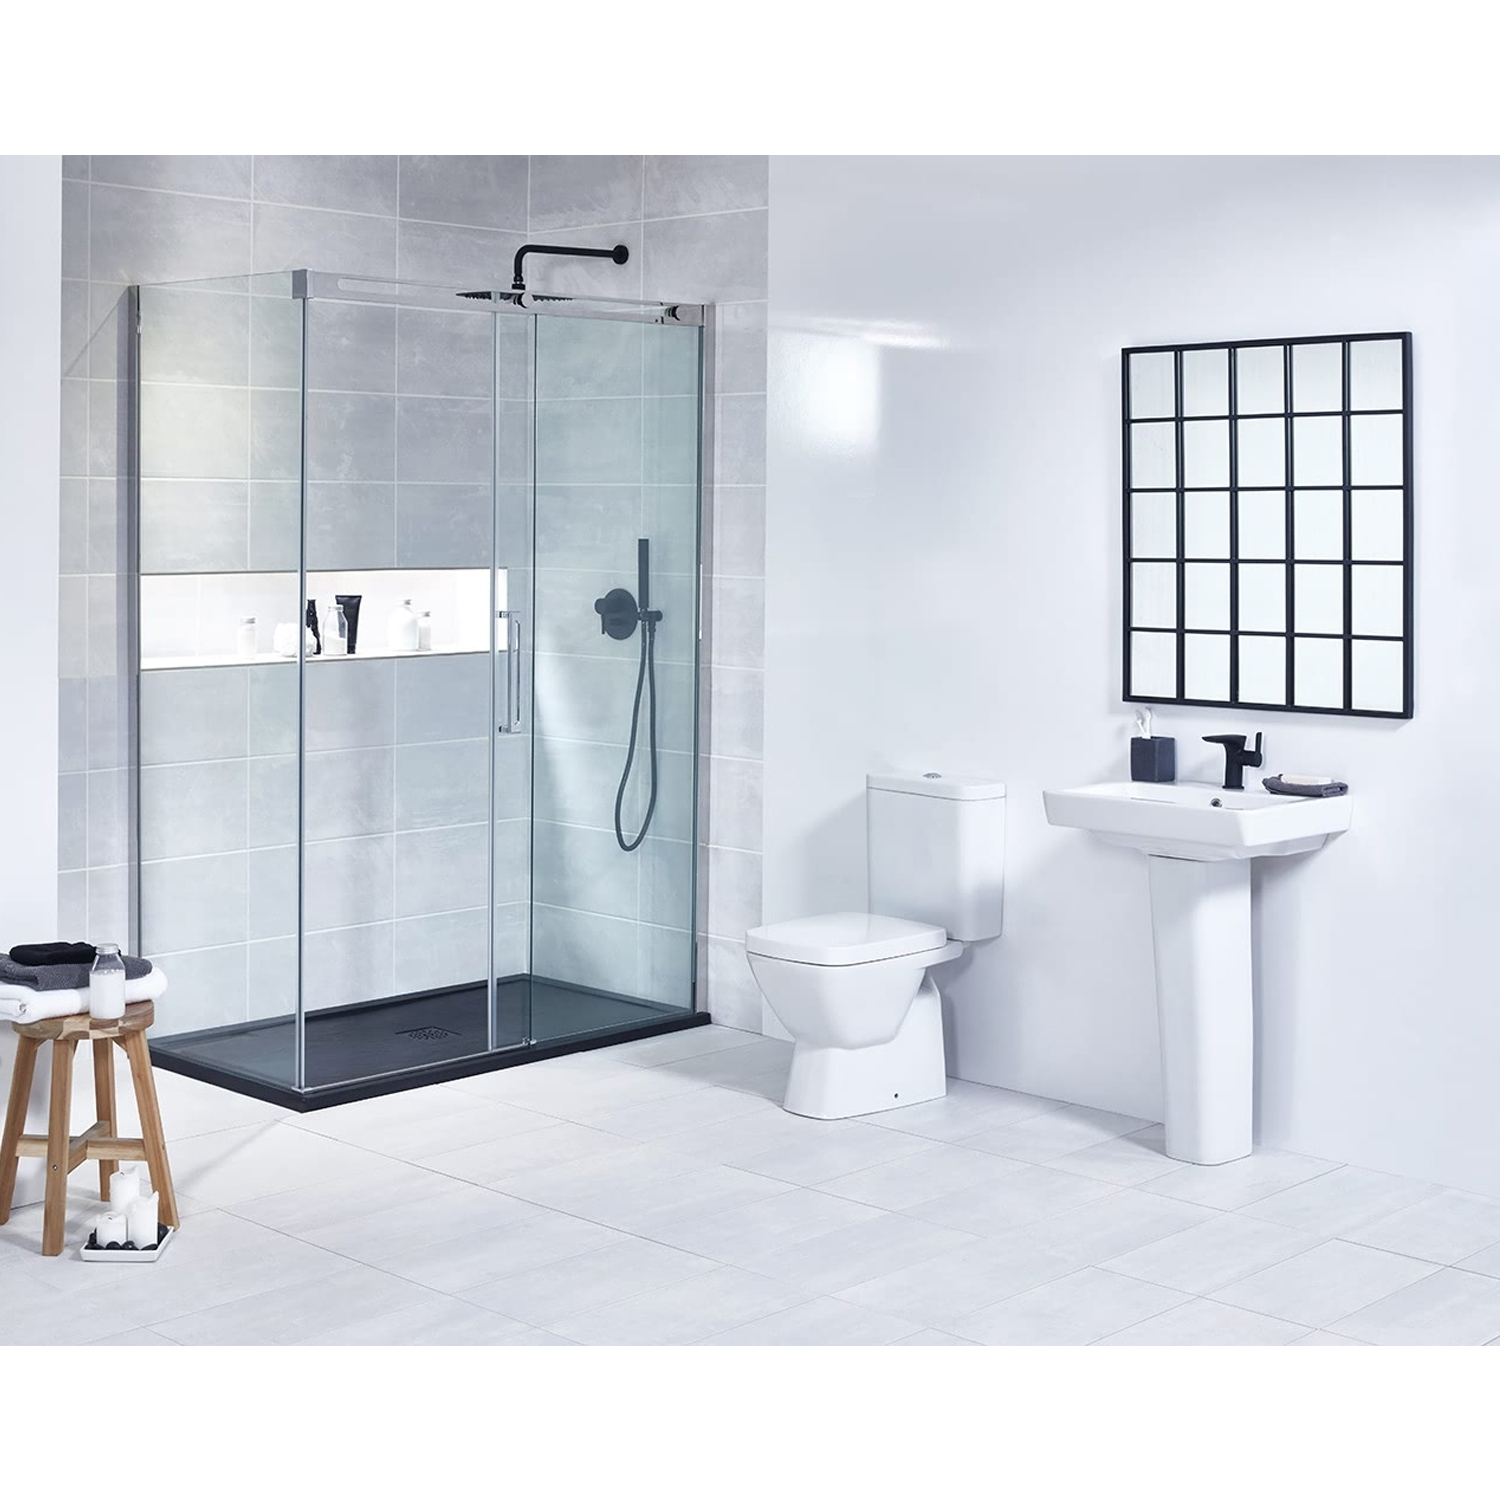 Verona Vibe Contemporary Basin with Full Pedestal 550mm Wide - 1 Tap Hole